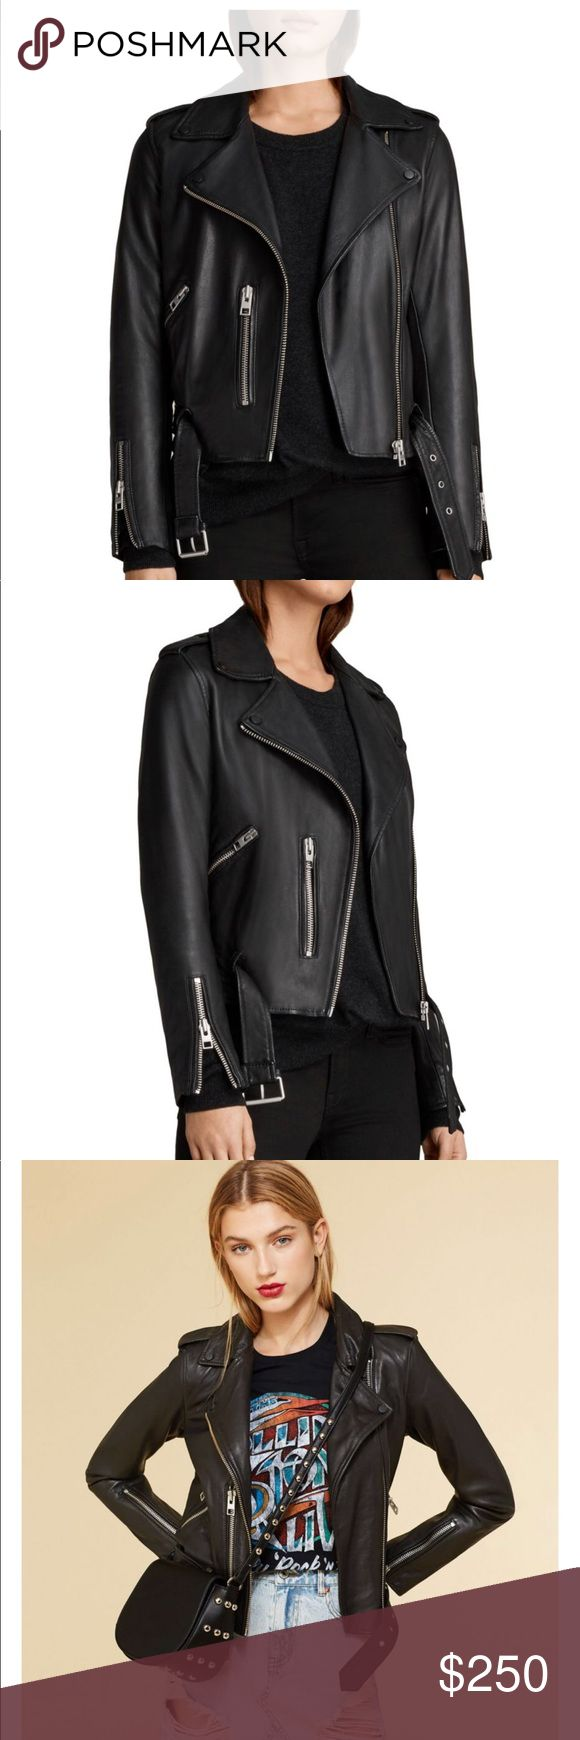 Black genuine leather jacket from AllSaints. Genuine sheep leather. Butter soft. Classic biker fit. Best selling style from this iconic brand known for their amazing leather goods. All Saints Jackets & Coats